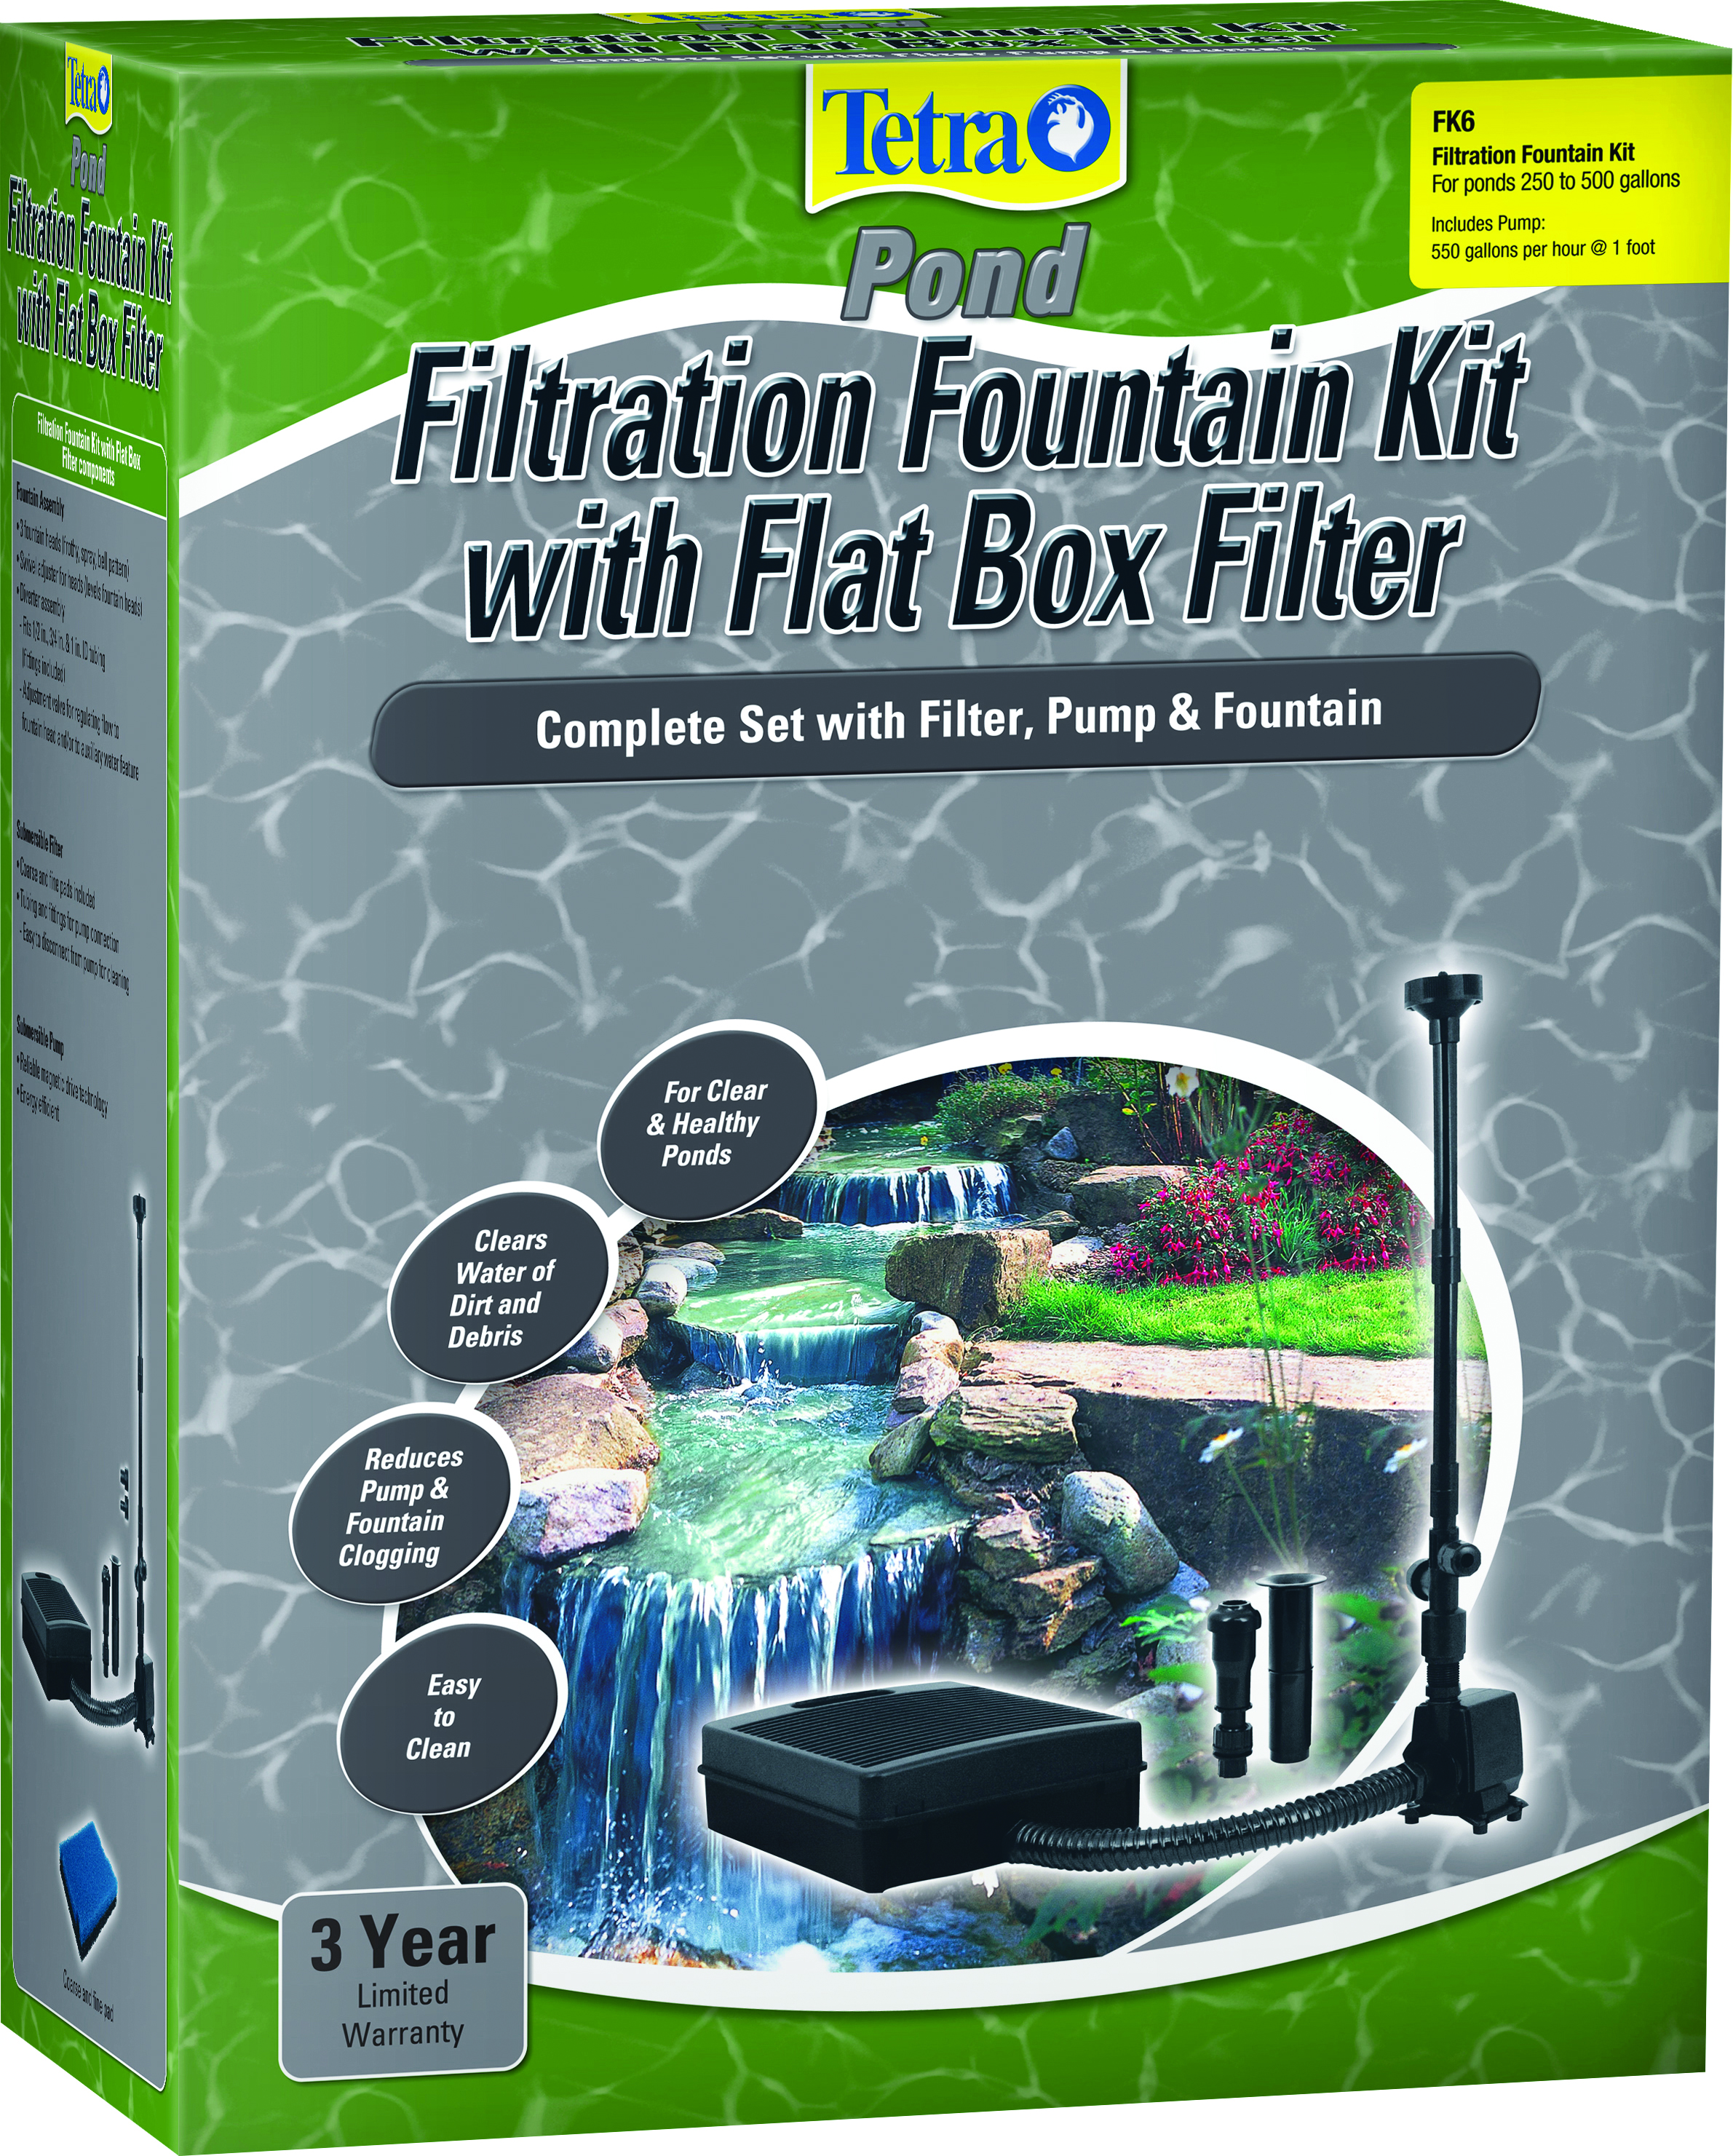 FILTRATION FOUNTAIN KIT